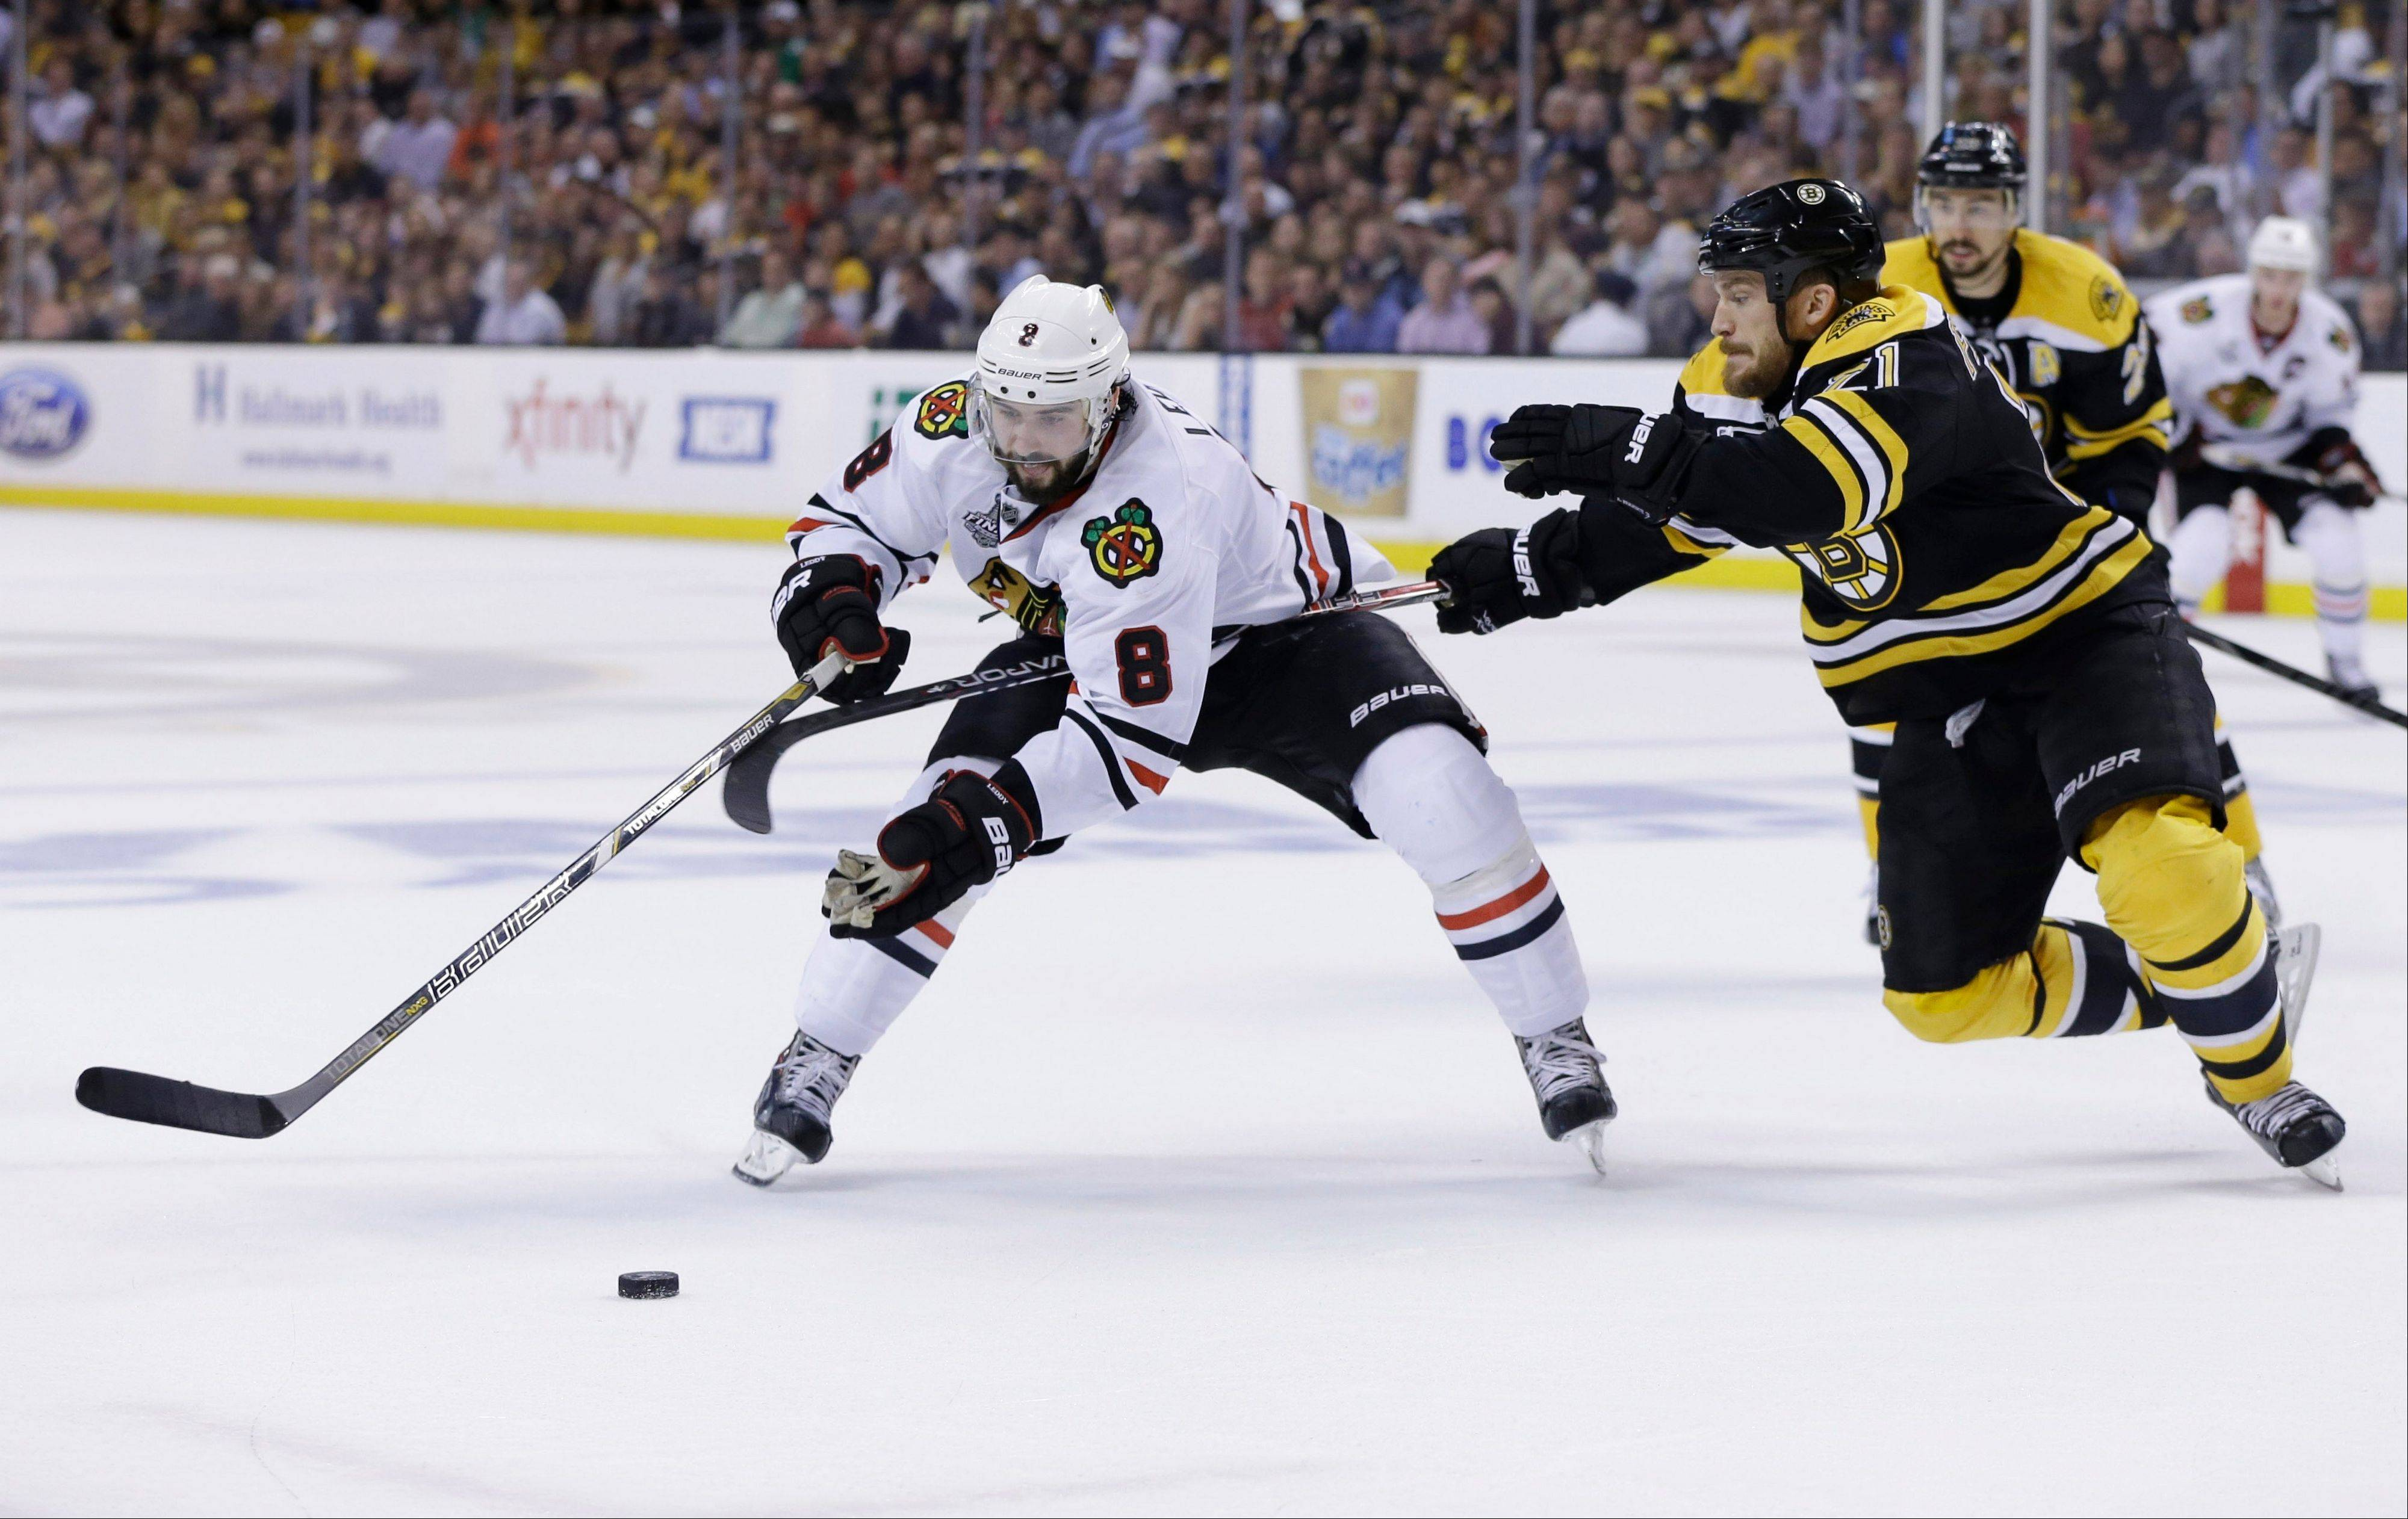 Hawks expect more ice time for Leddy